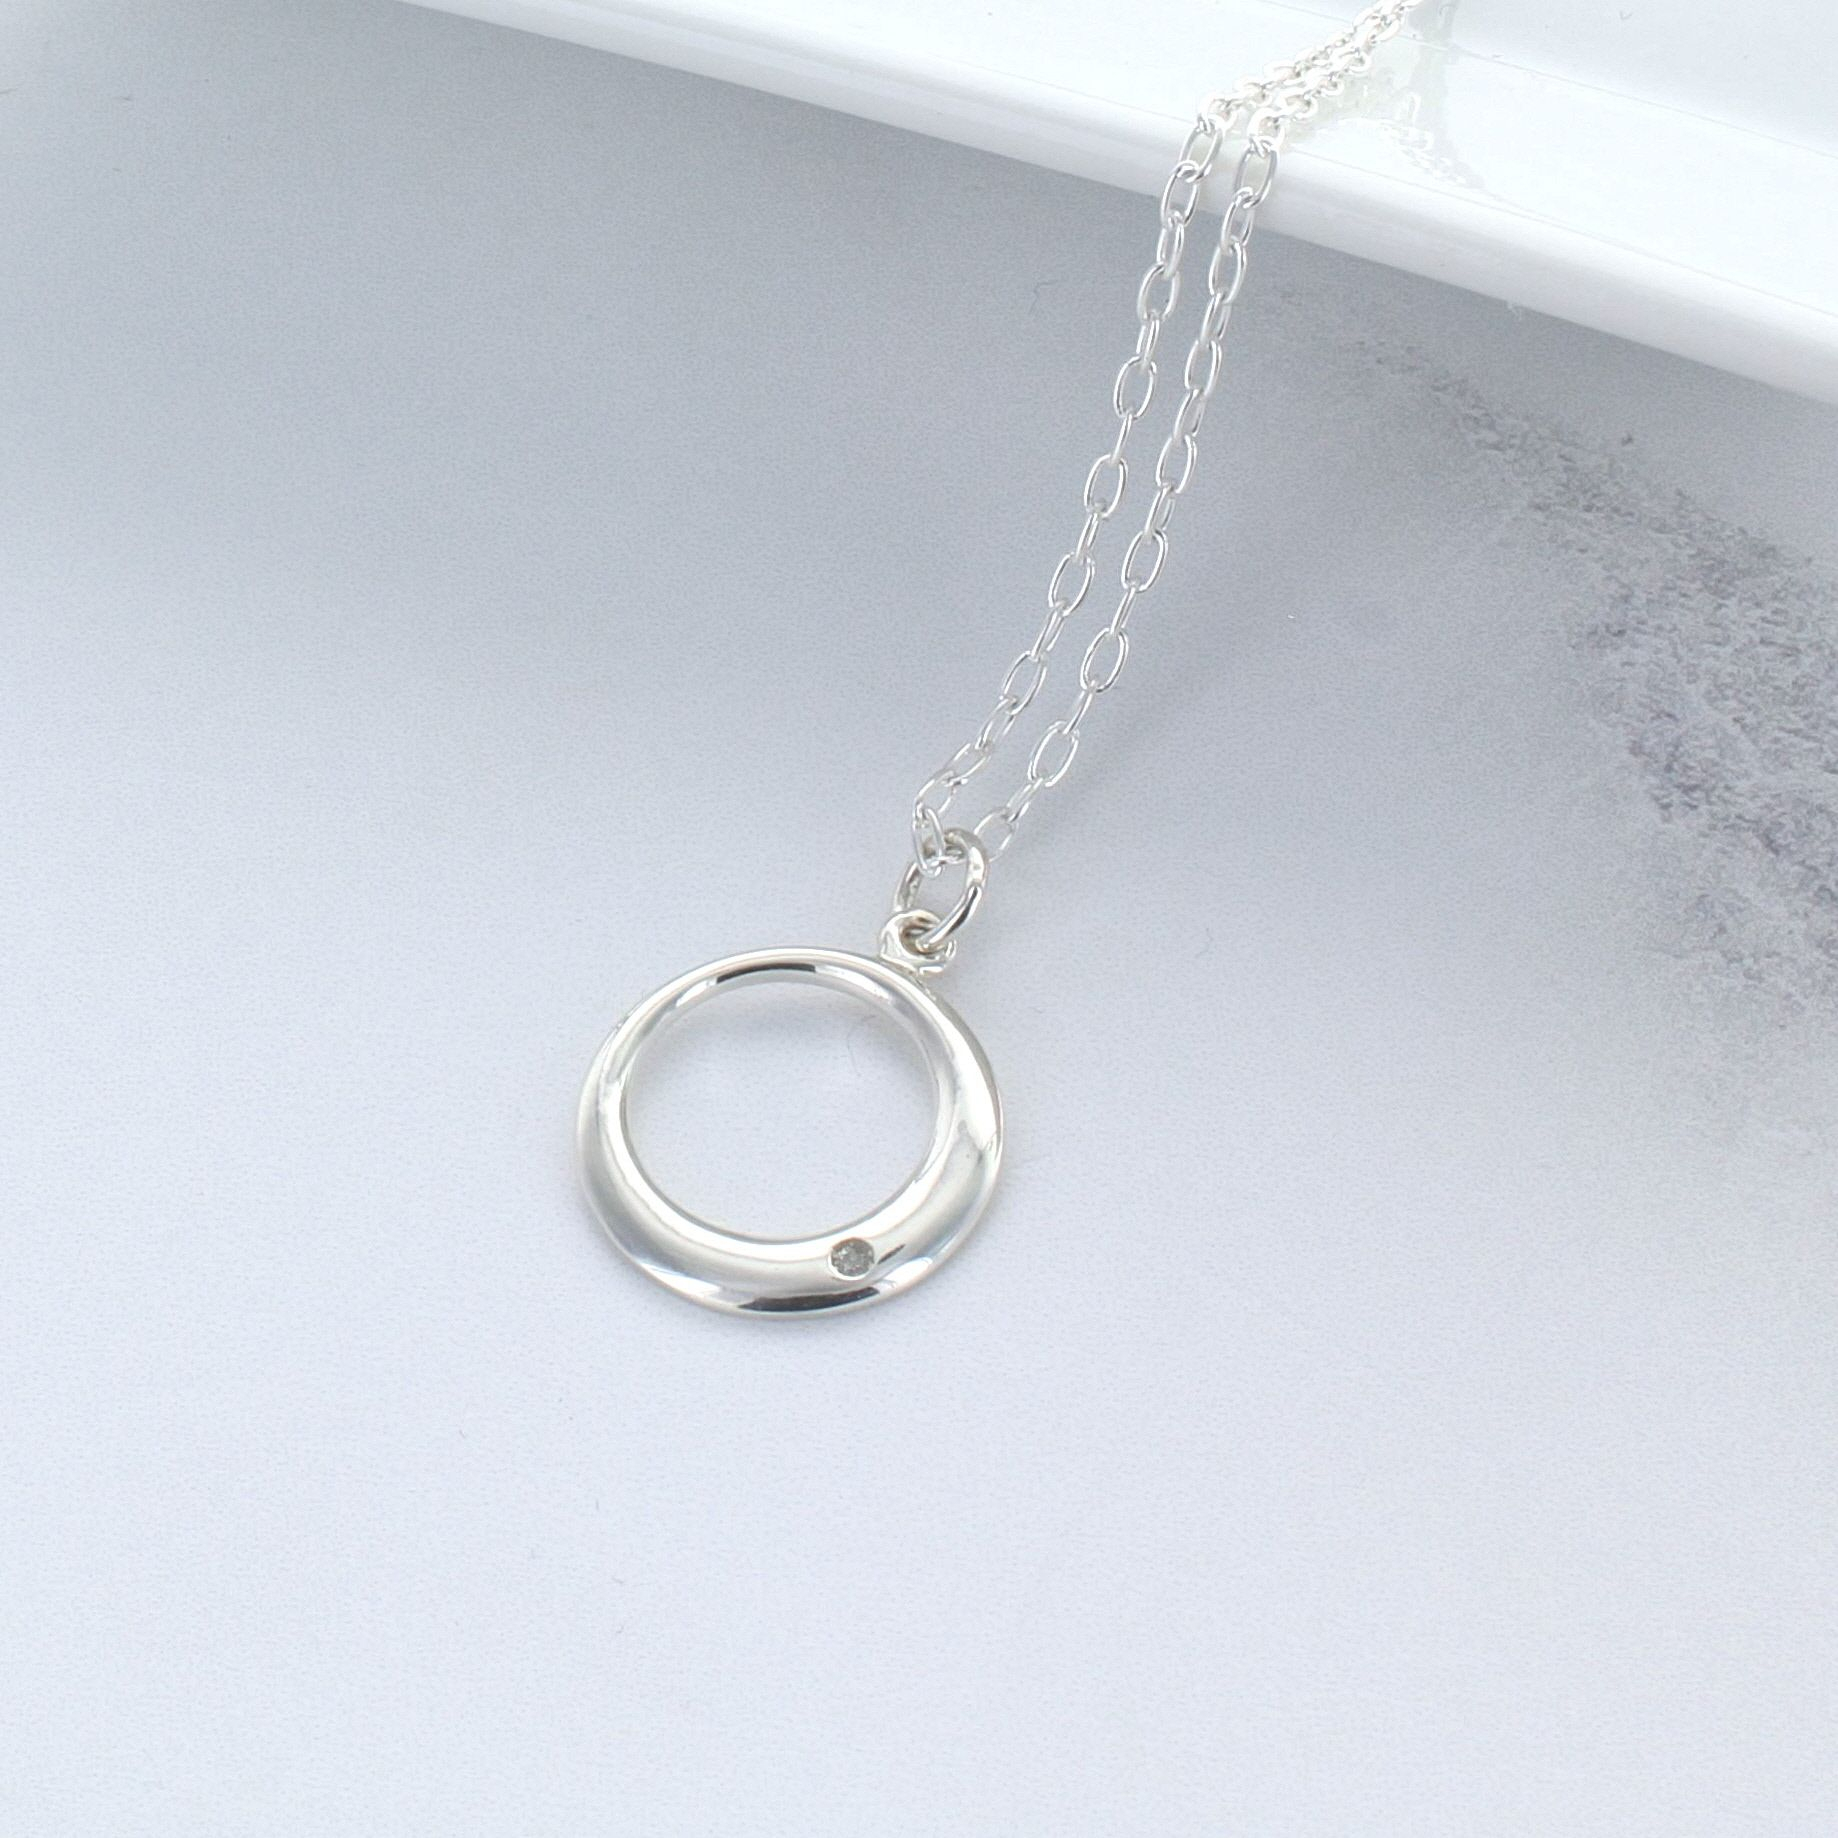 Circle Of Life Diamond Necklace With Recent Classic Cable Chain Necklaces (View 13 of 25)